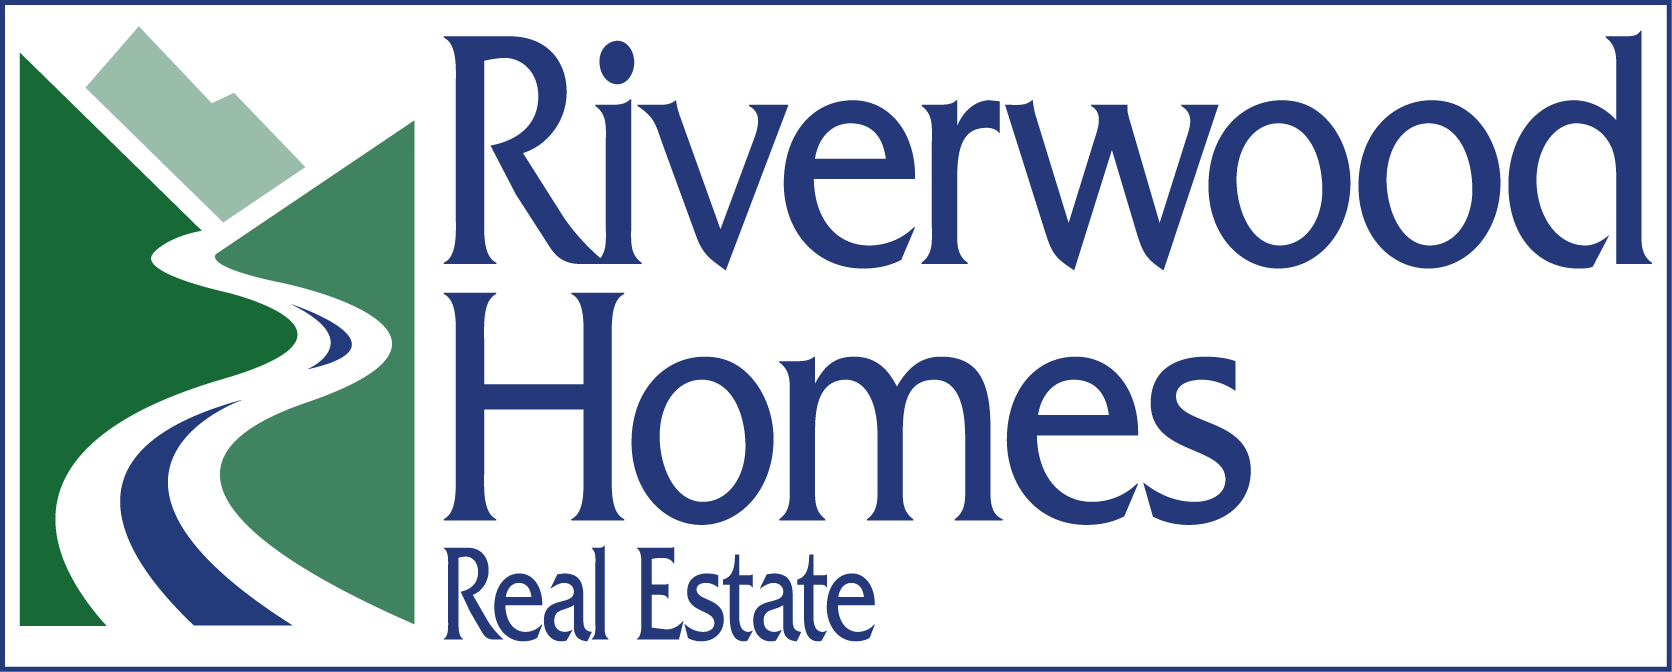 CharLee Sloan-Rogers, Realtor®, Riverwood Homes Real Estate